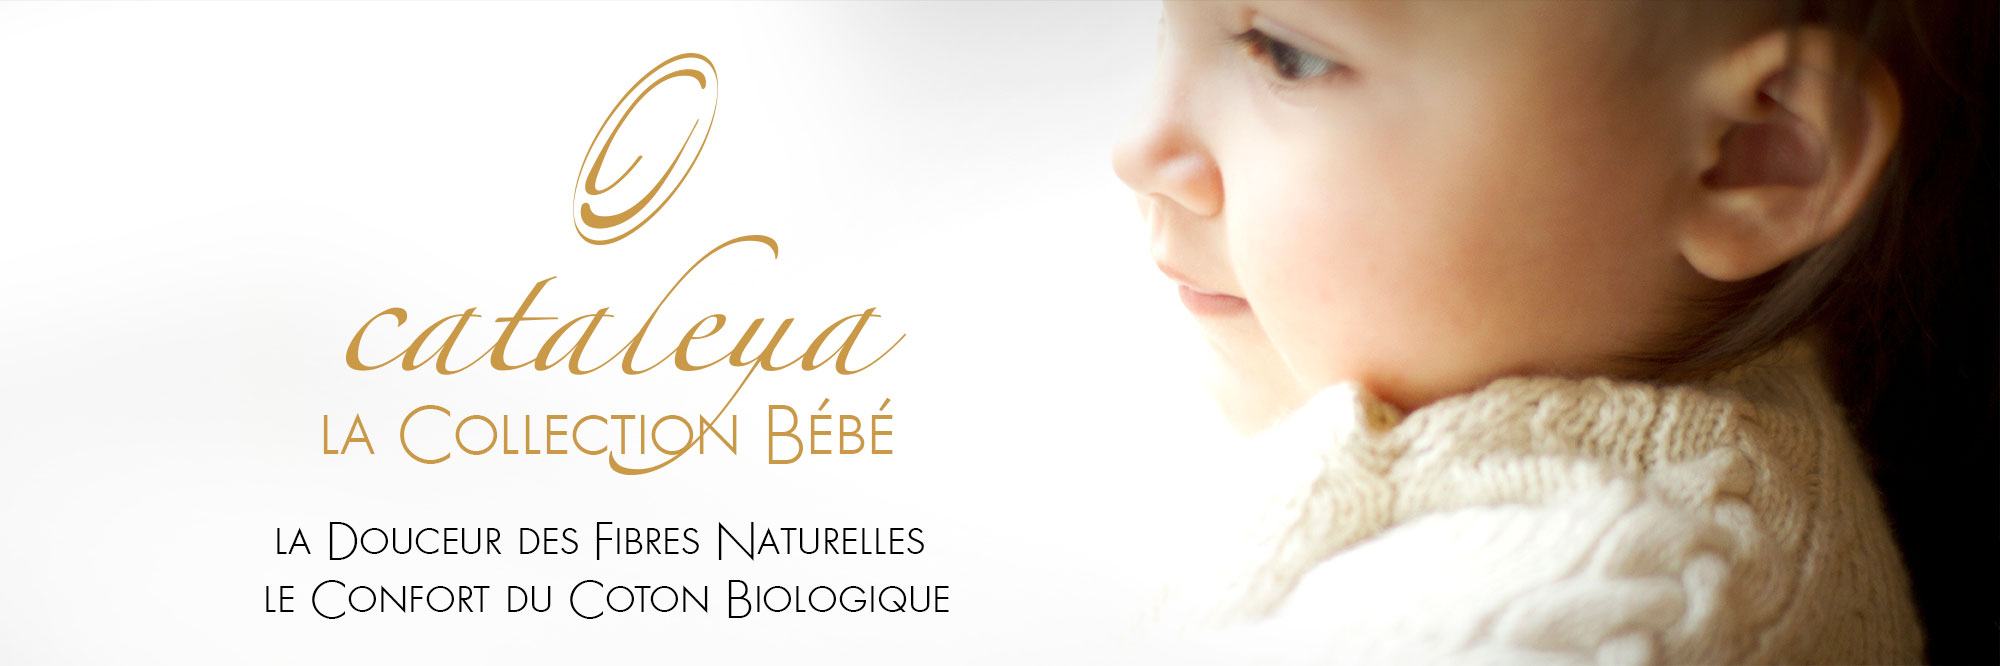 Collection de maille pour bébé Cataleya